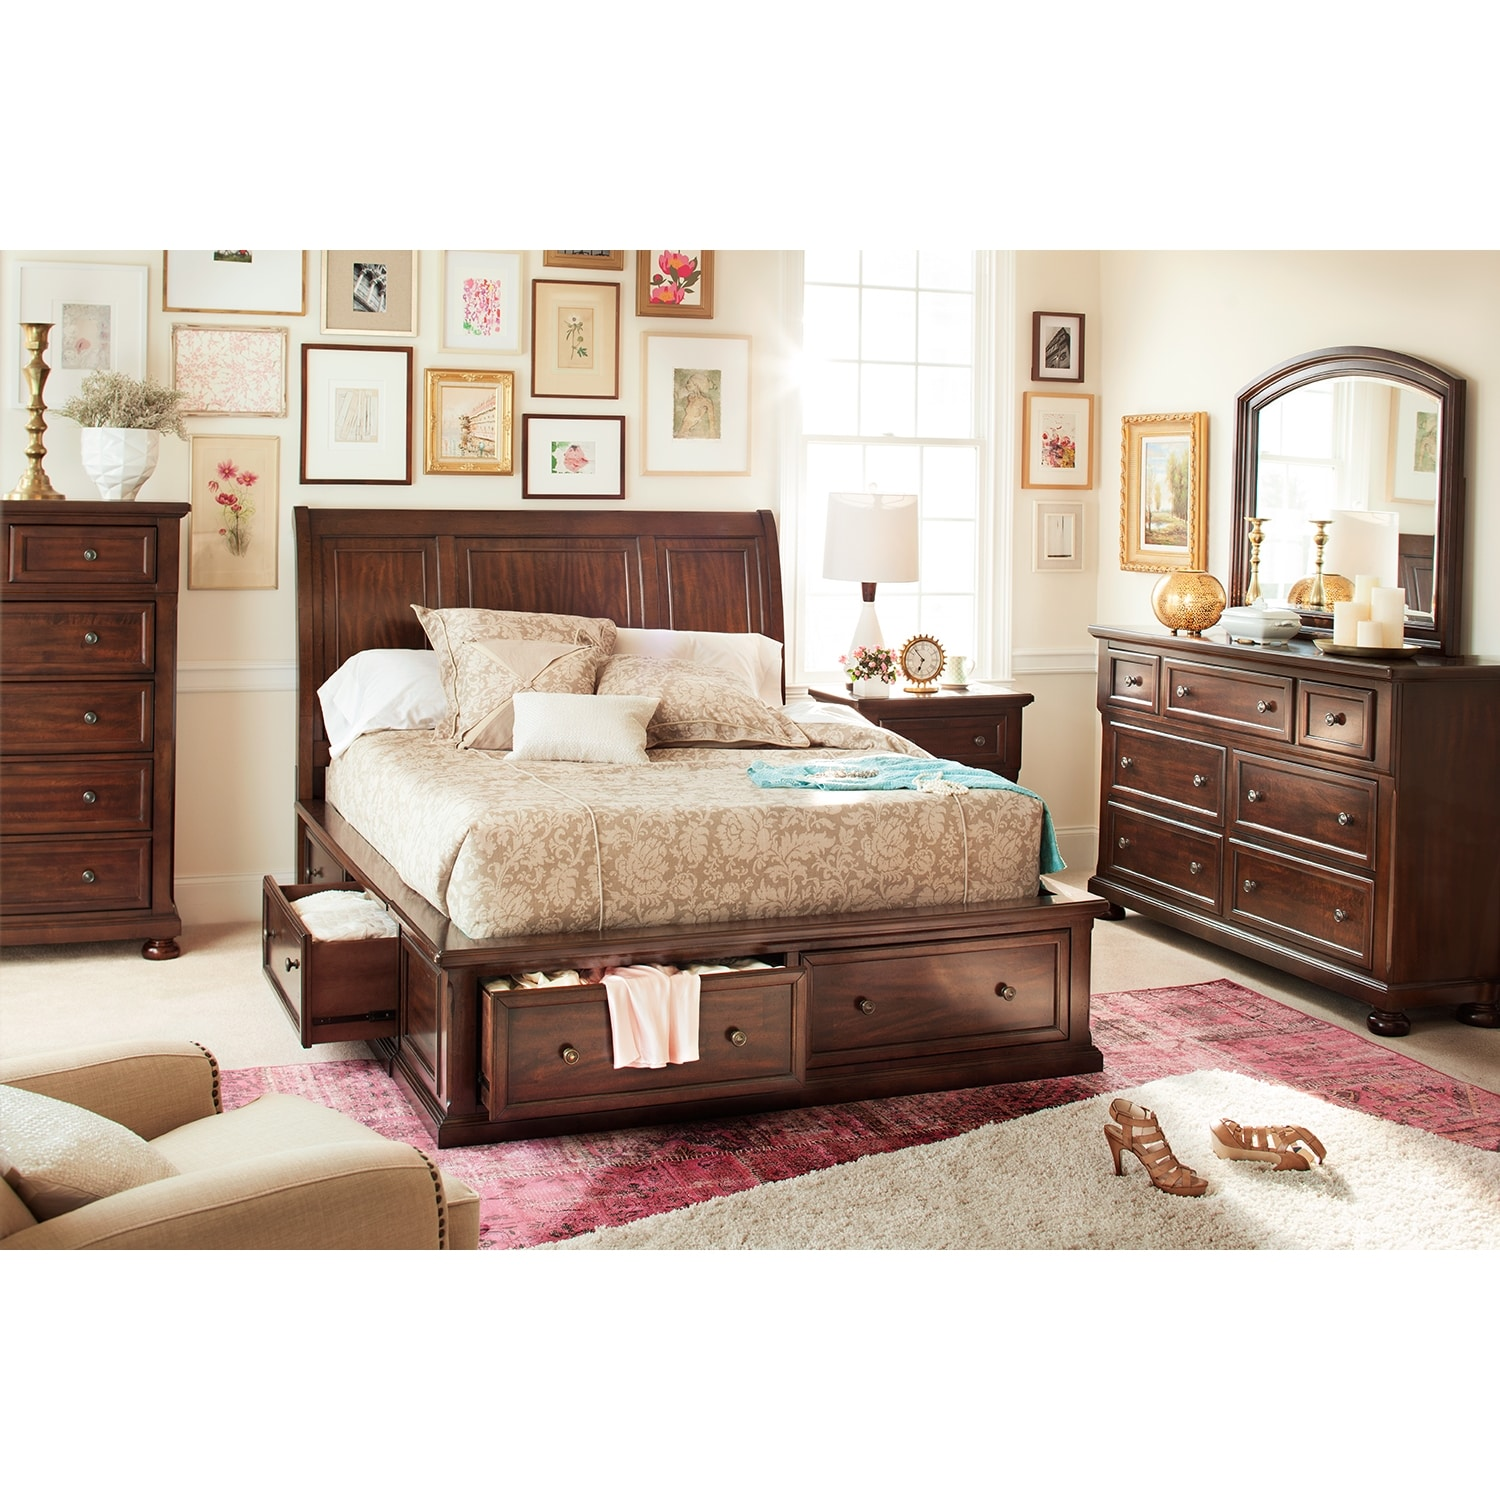 bedroom furniture hanover 7 piece queen storage bedroom set cherry